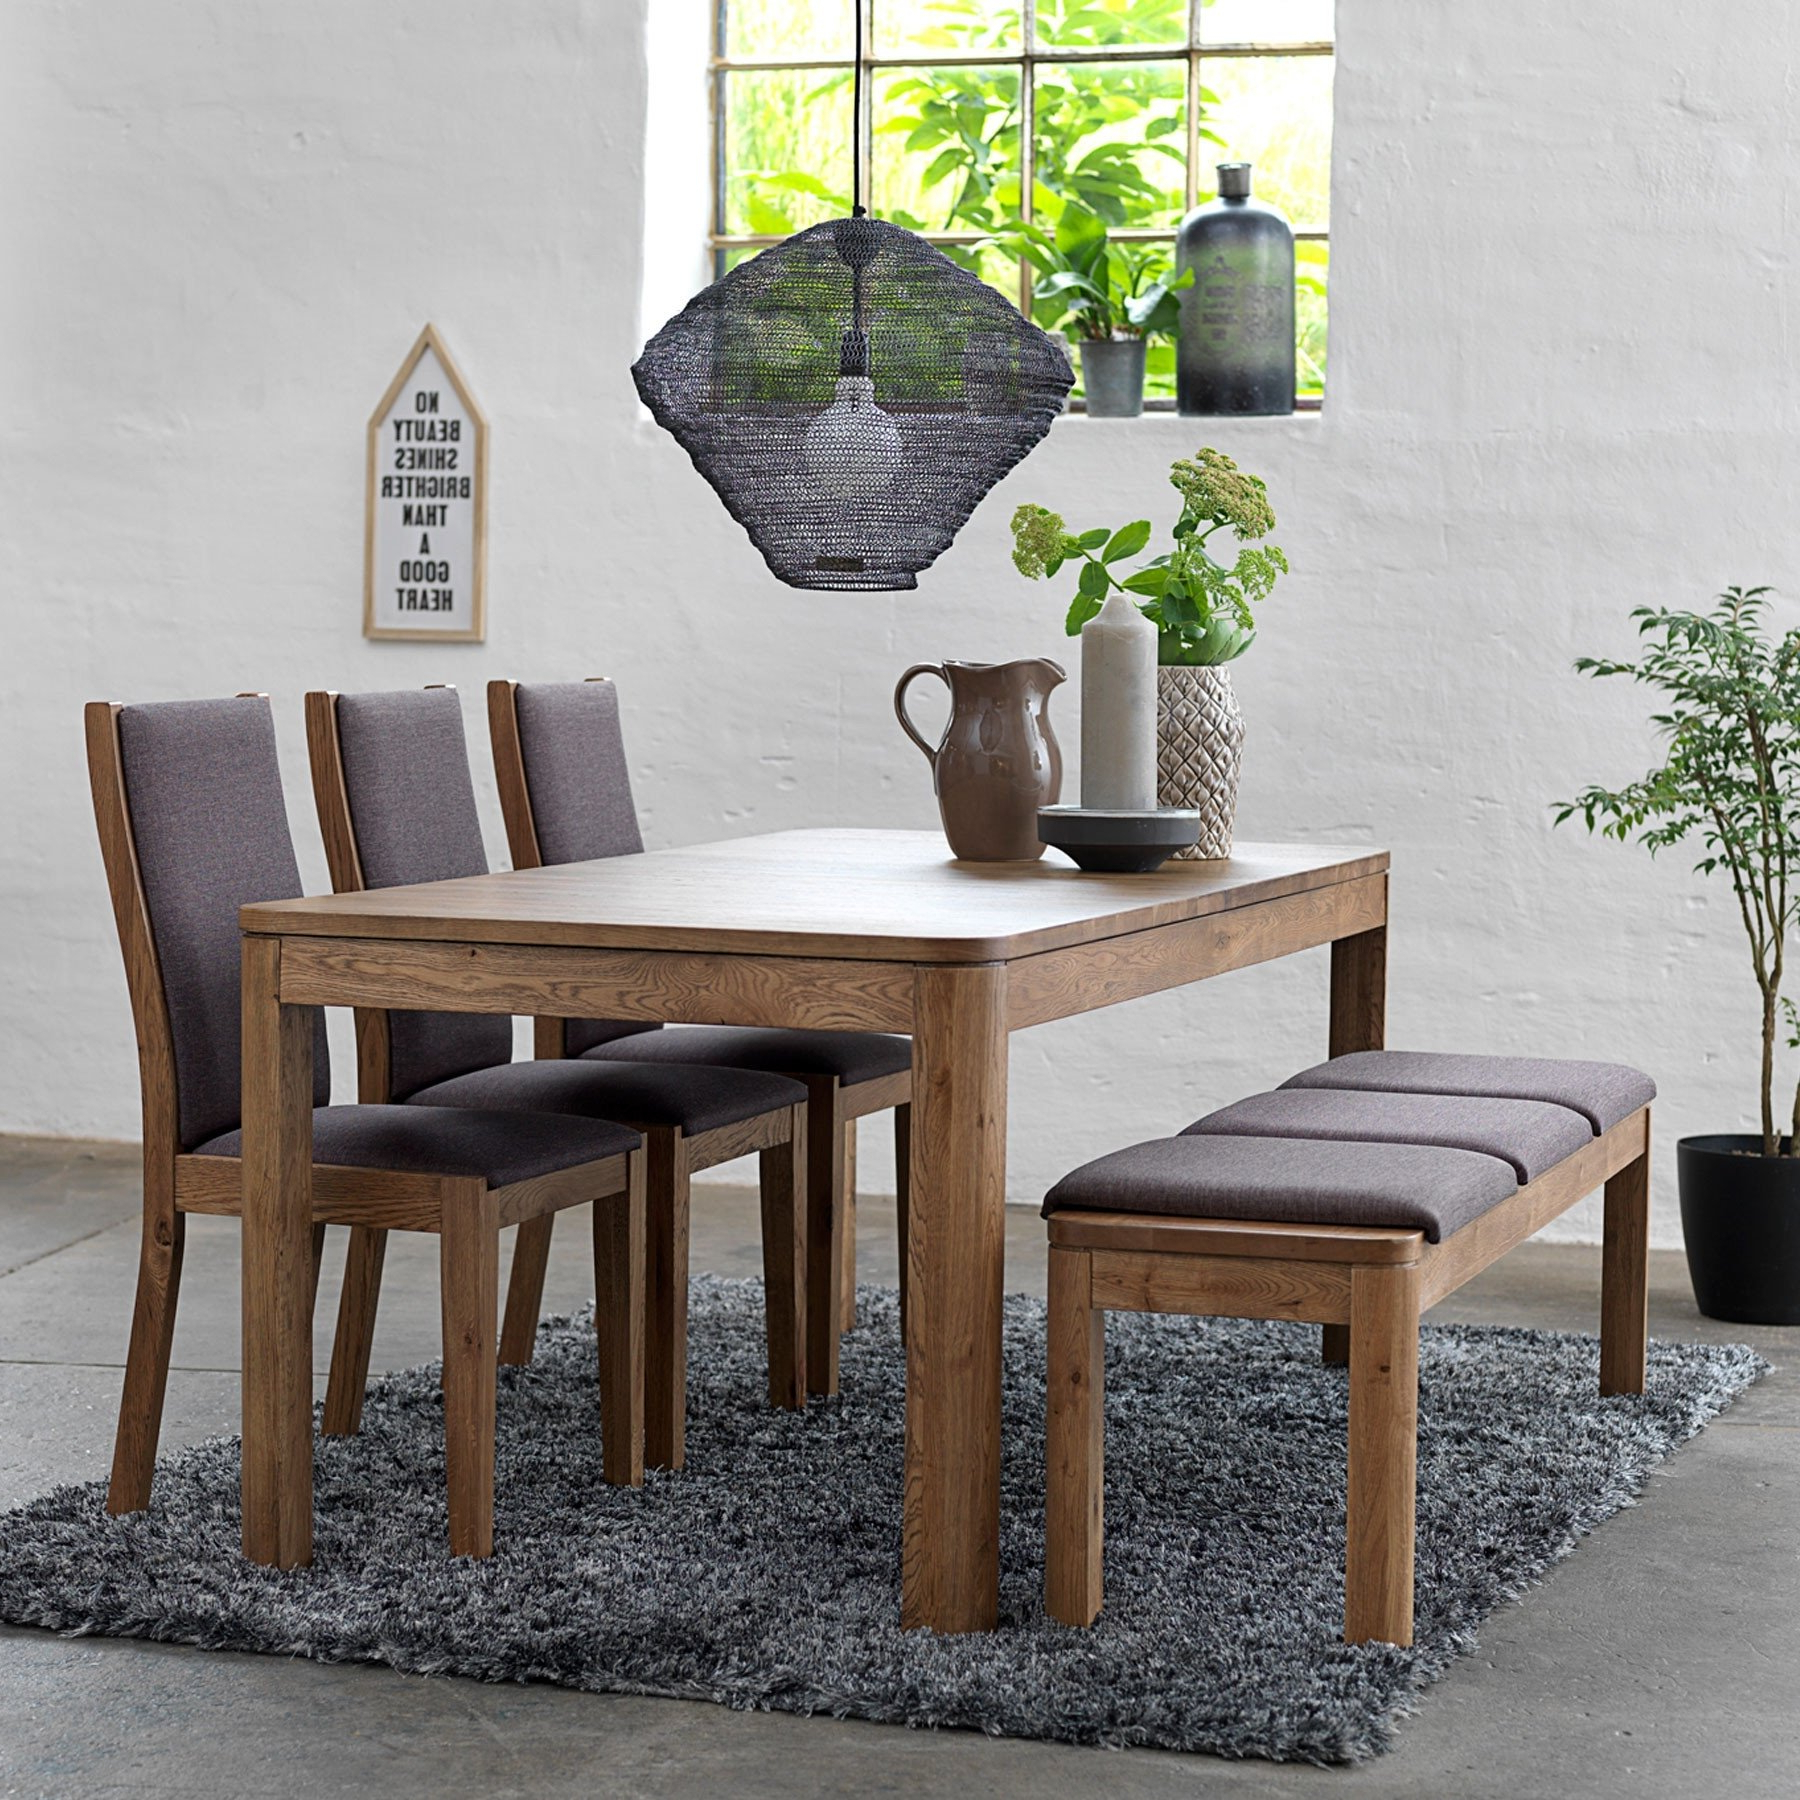 Most Recent 6 Seater Retangular Wood Contemporary Dining Tables Pertaining To 50+ Dining Table With Bench You'll Love In 2020 – Visual Hunt (View 17 of 25)